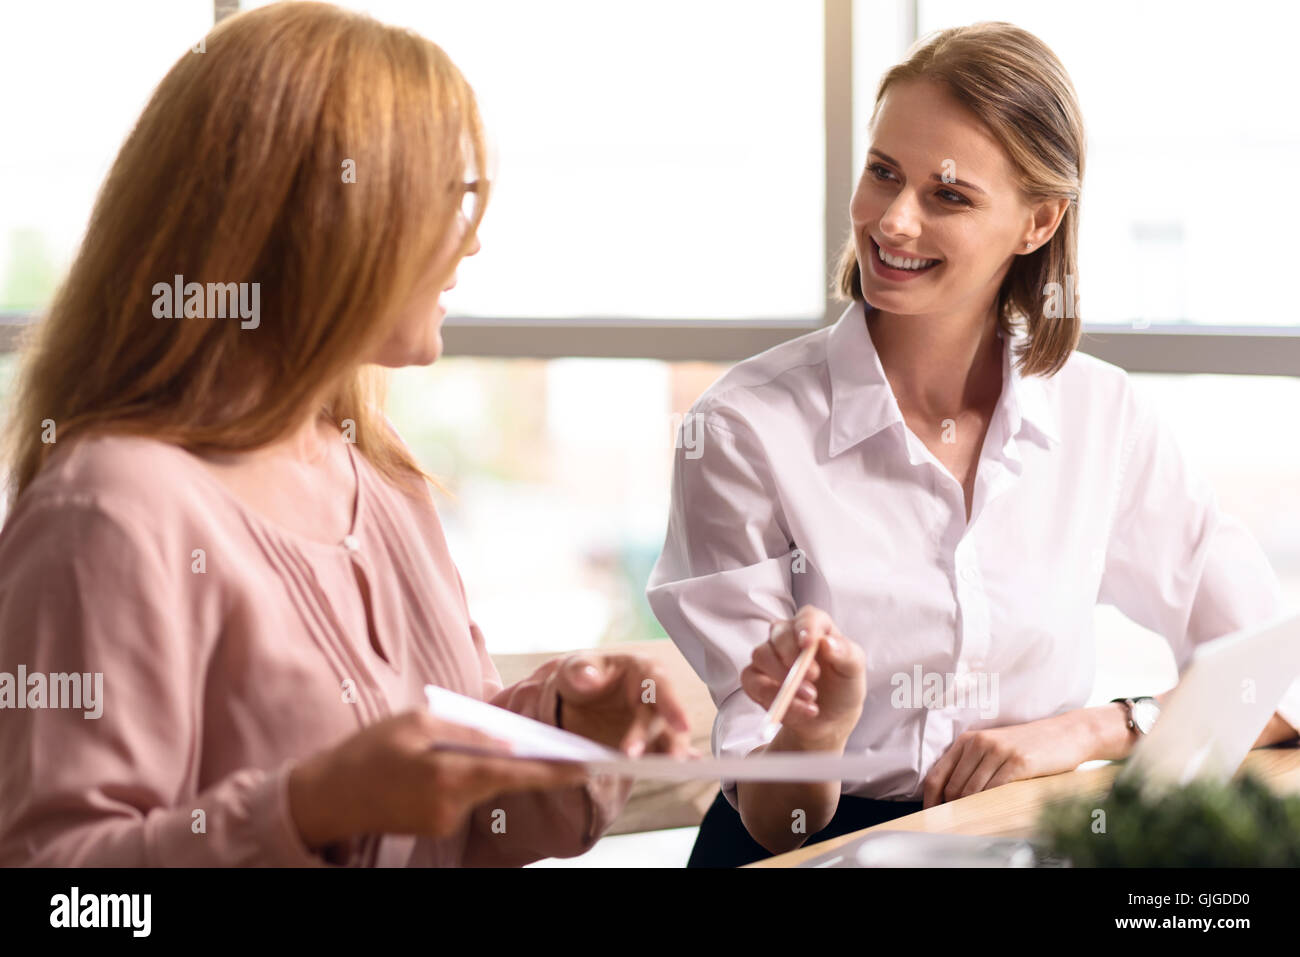 Cheerful smiling colleagues talking - Stock Image